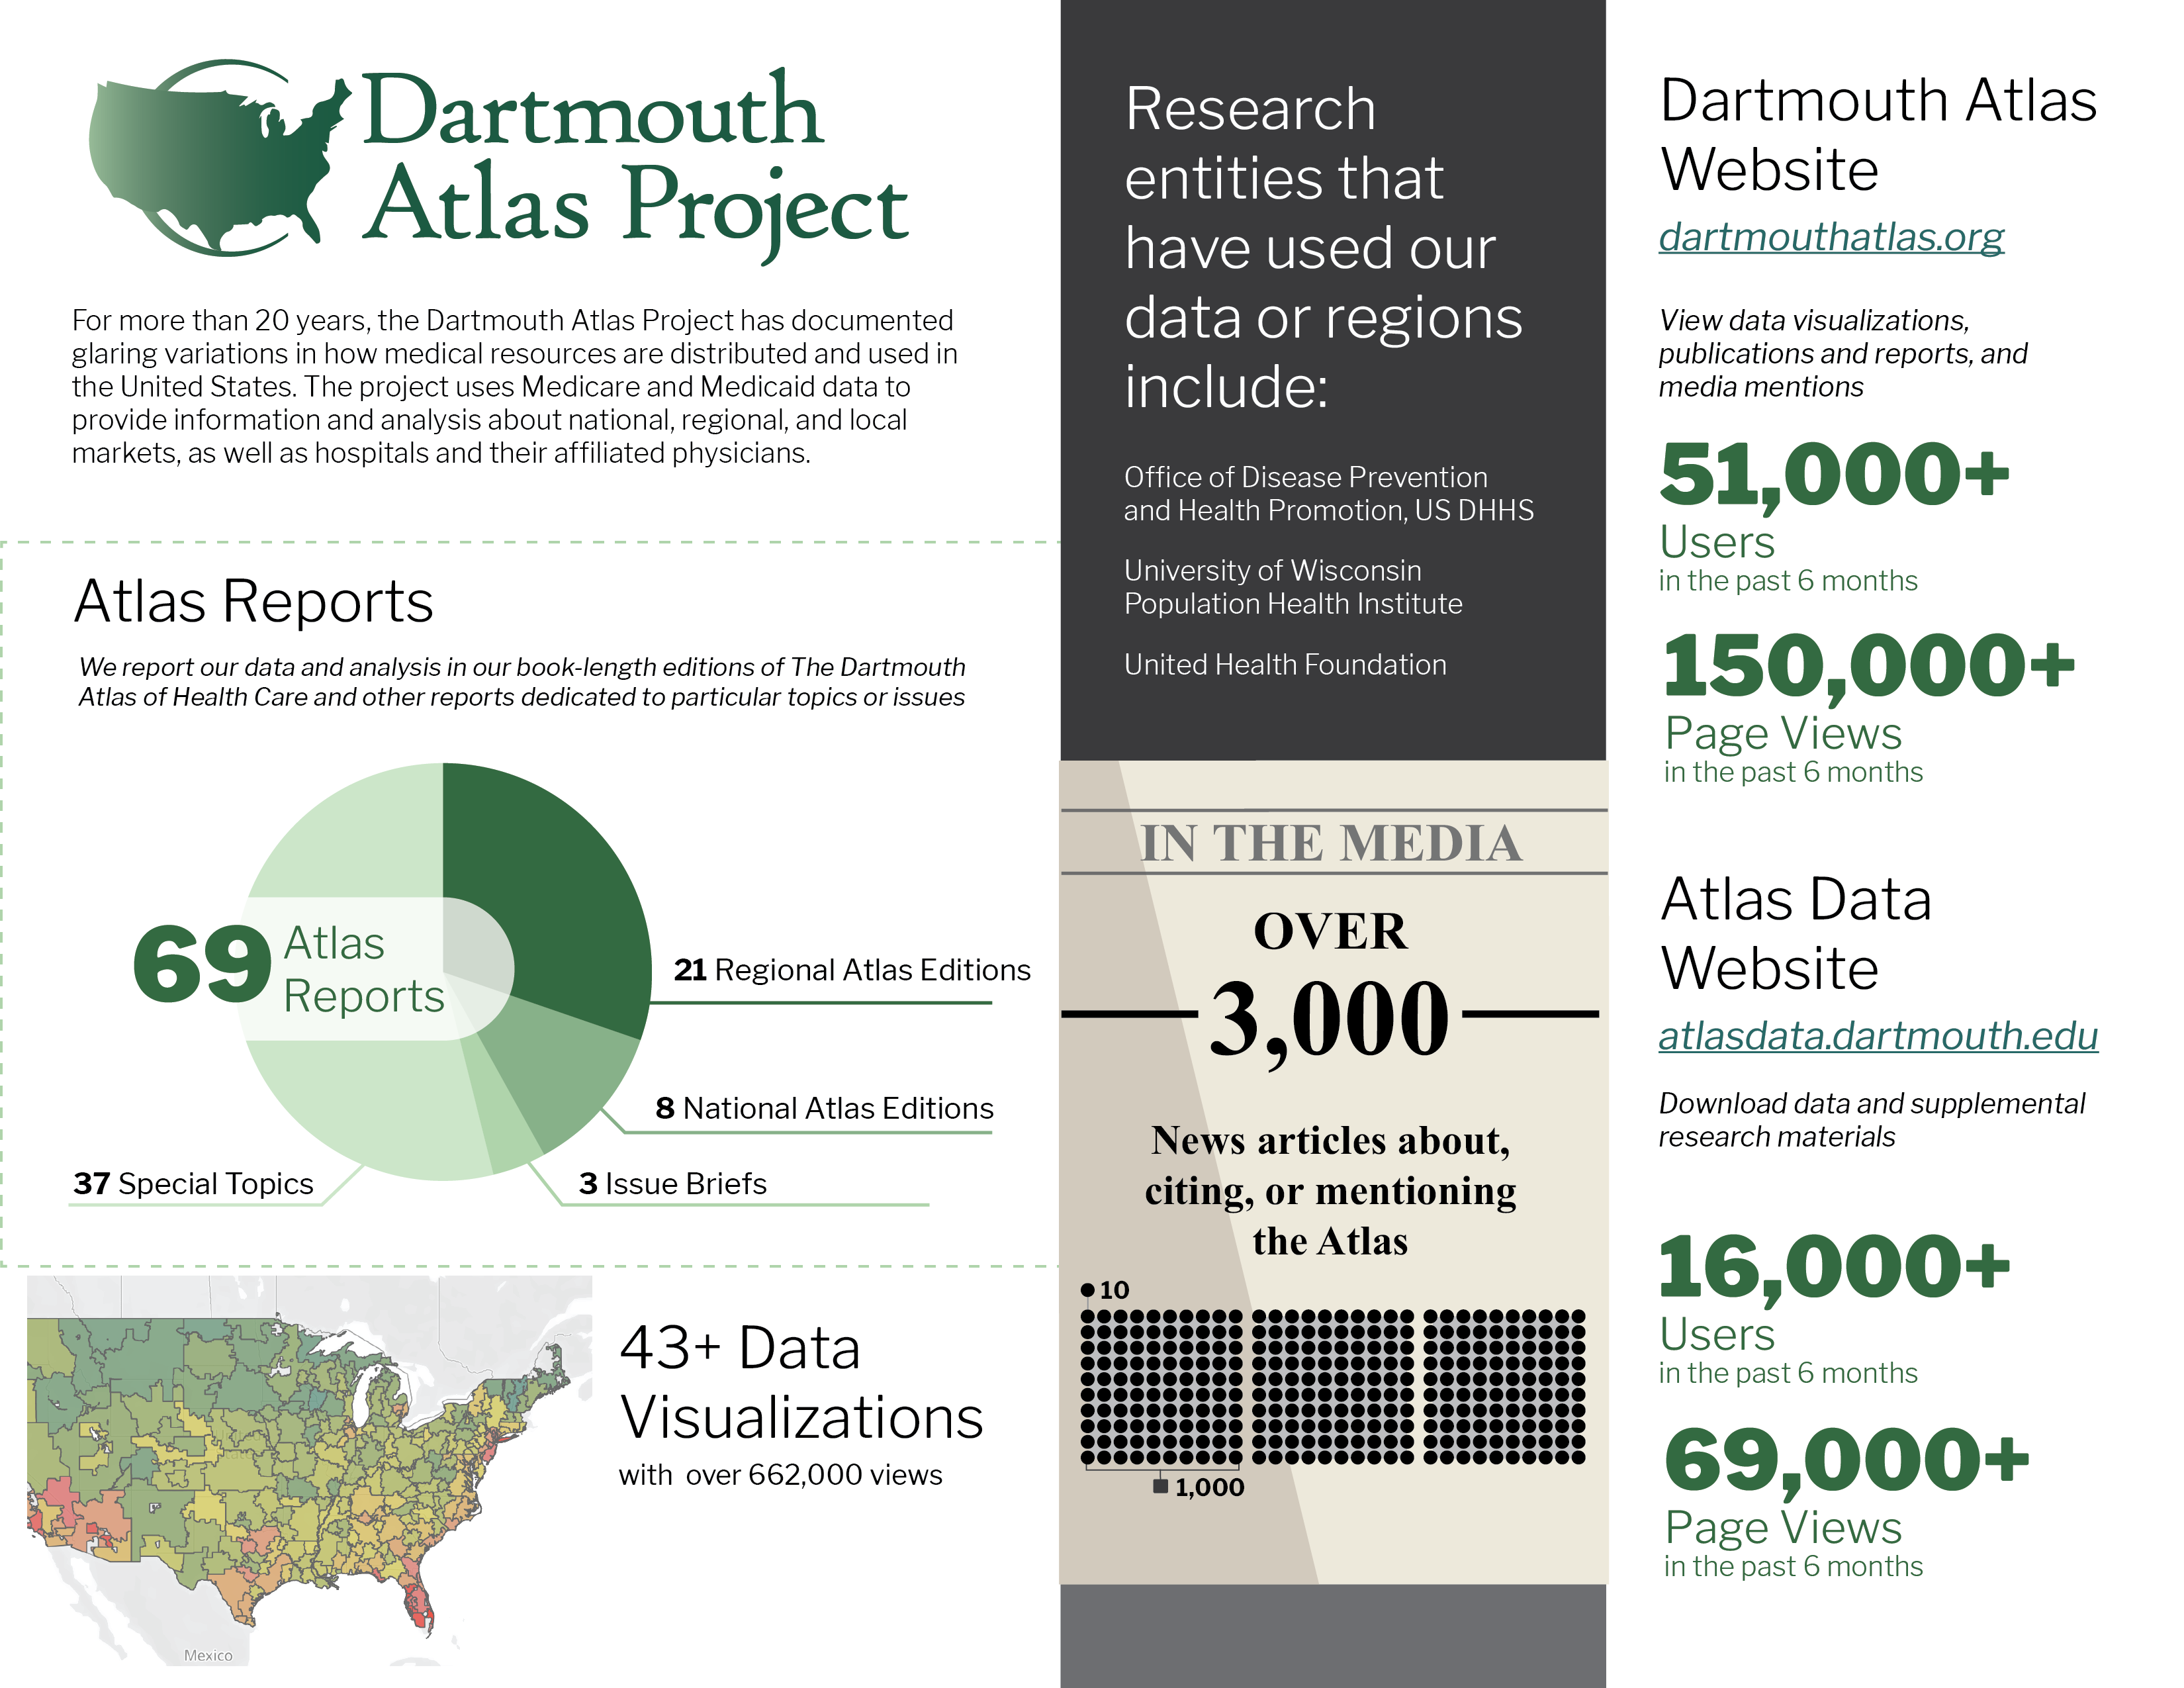 Infographic on the Dartmouth Atlas of Health Care Project